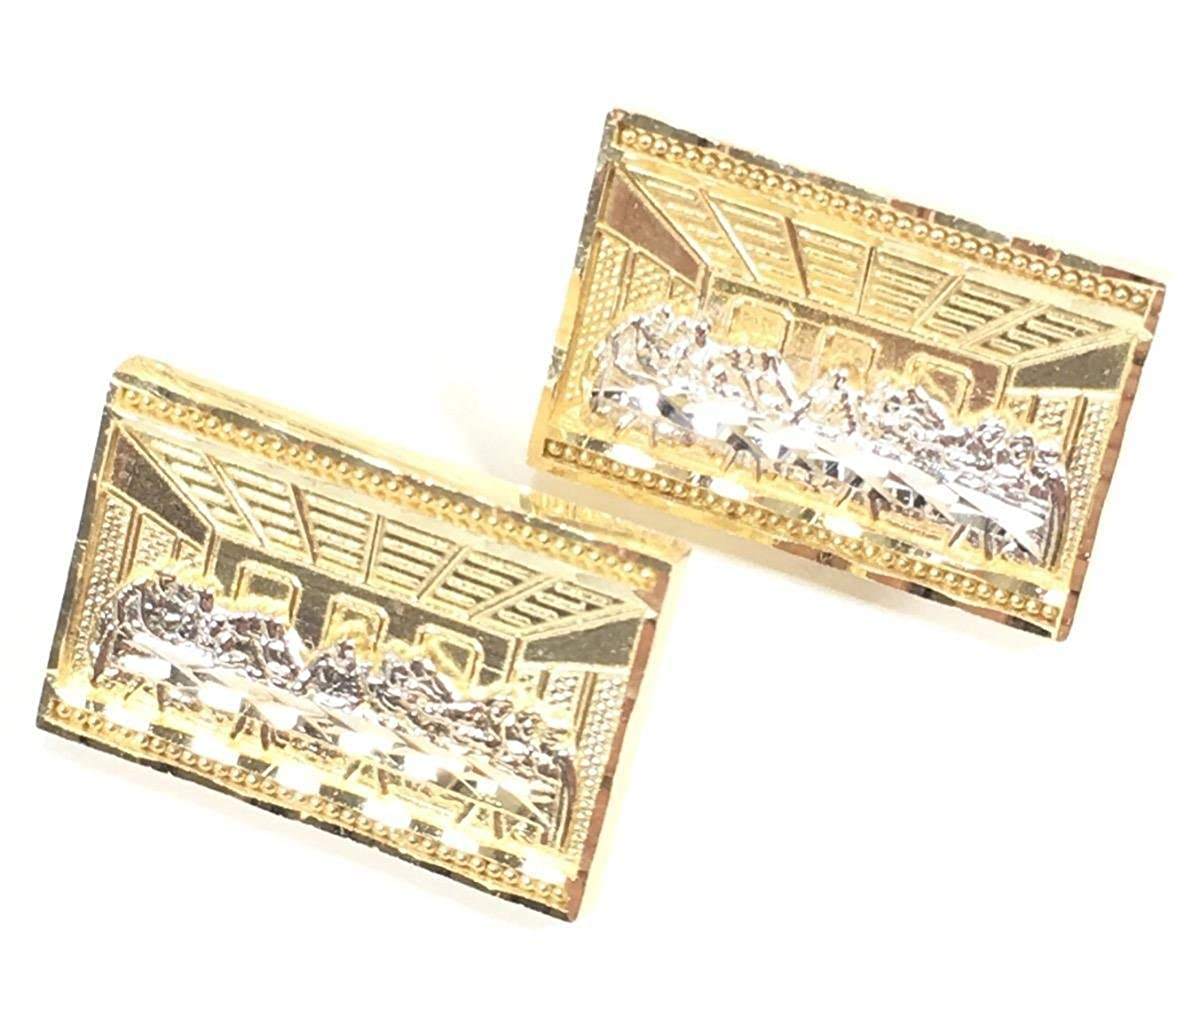 NEW 10K YELLOW GOLD 20 MM WIDE RECTANGLE LAST SUPPER STUD EARRINGS 6225